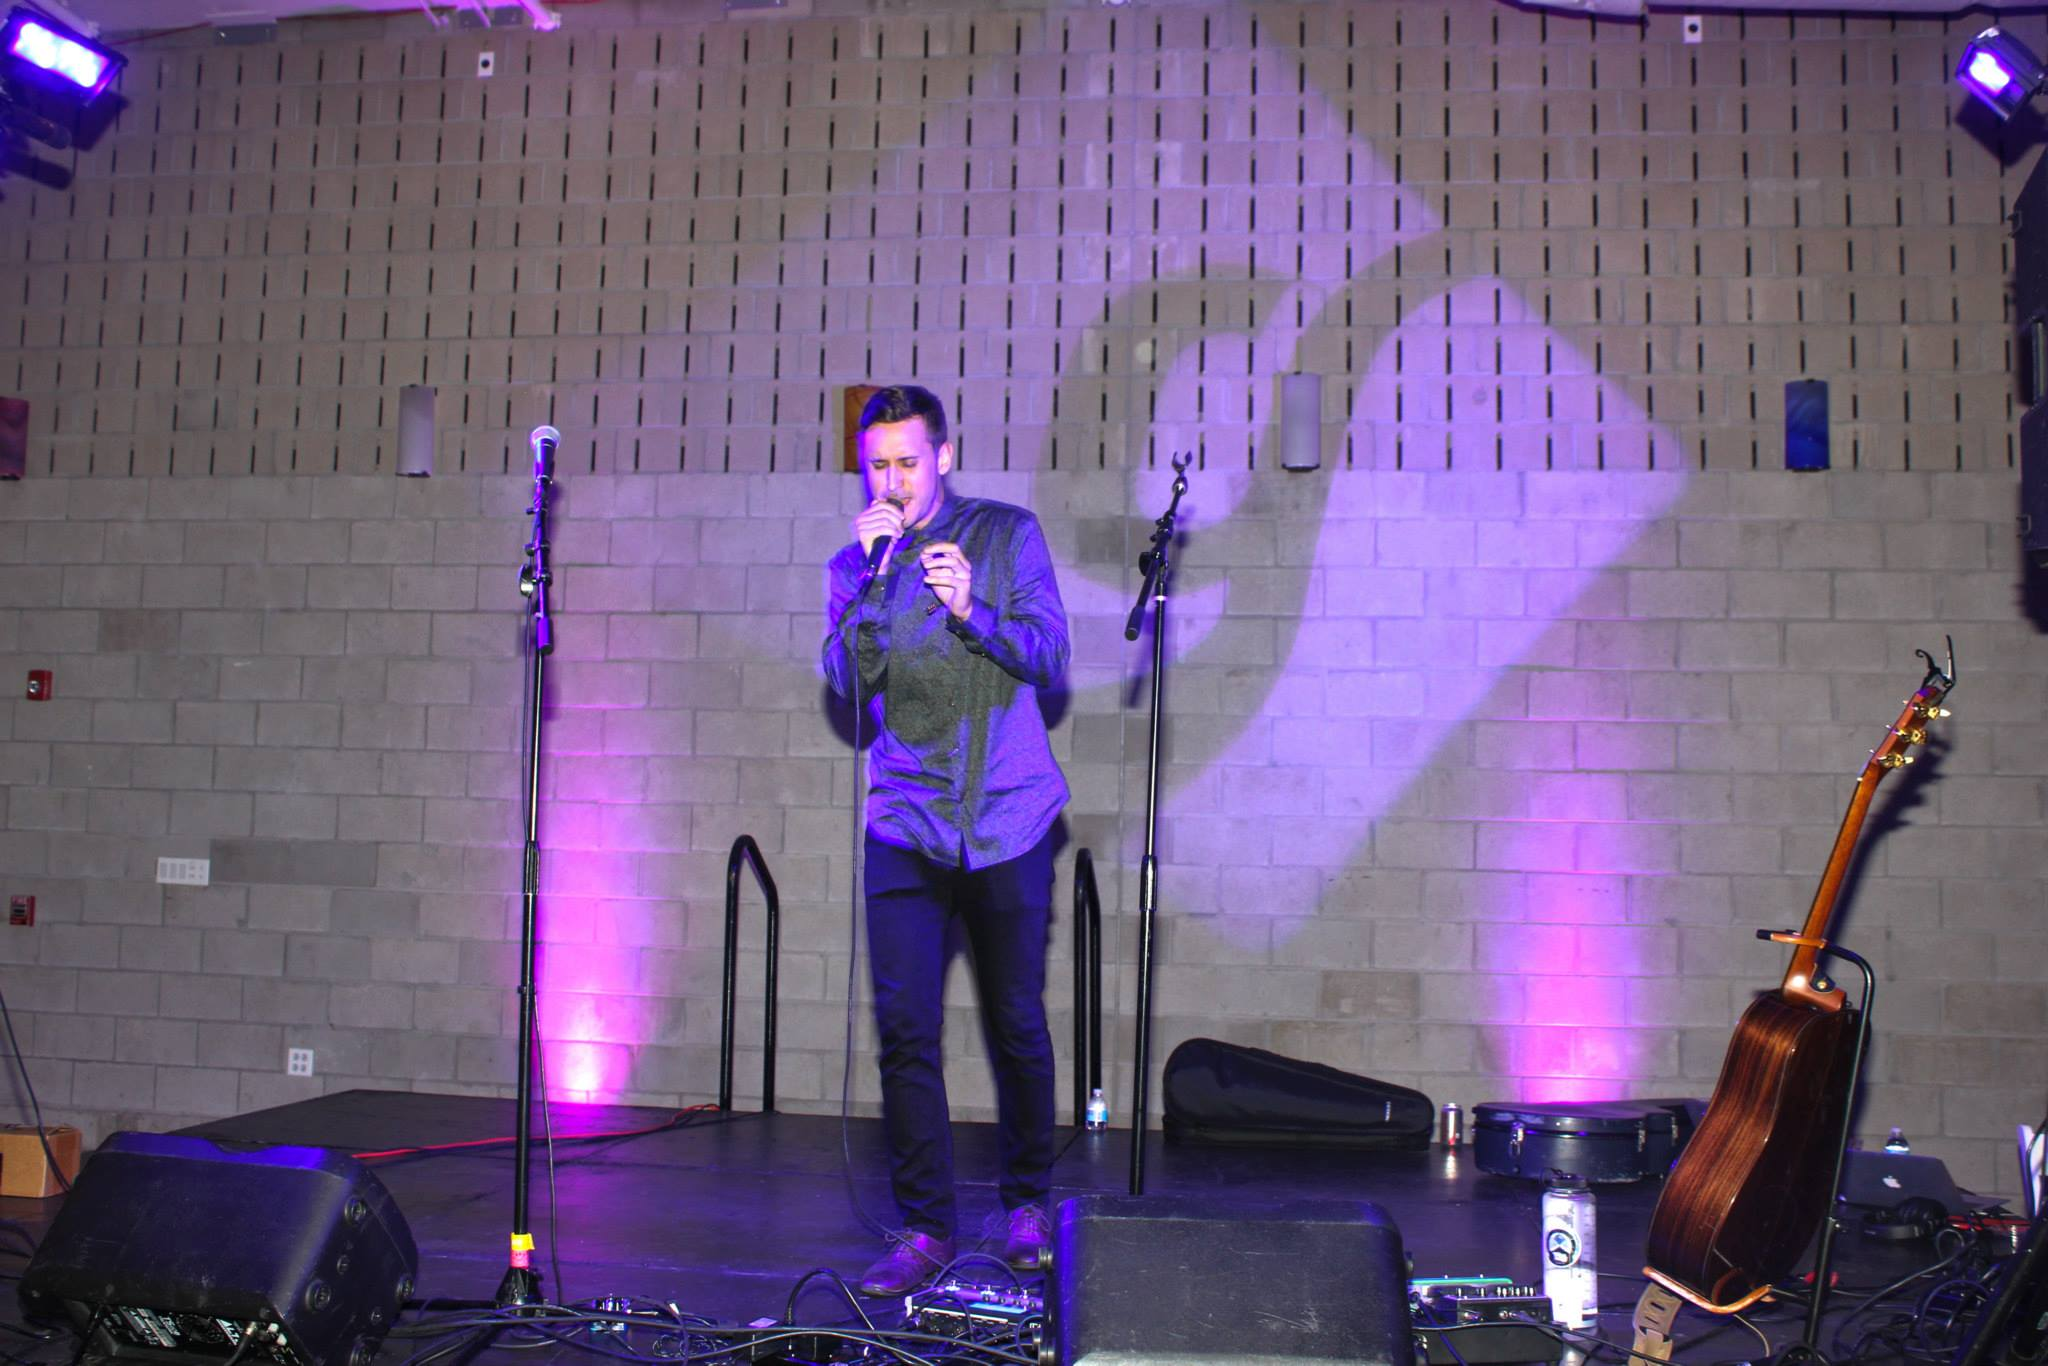 Acoustic performance by Matthew Santos